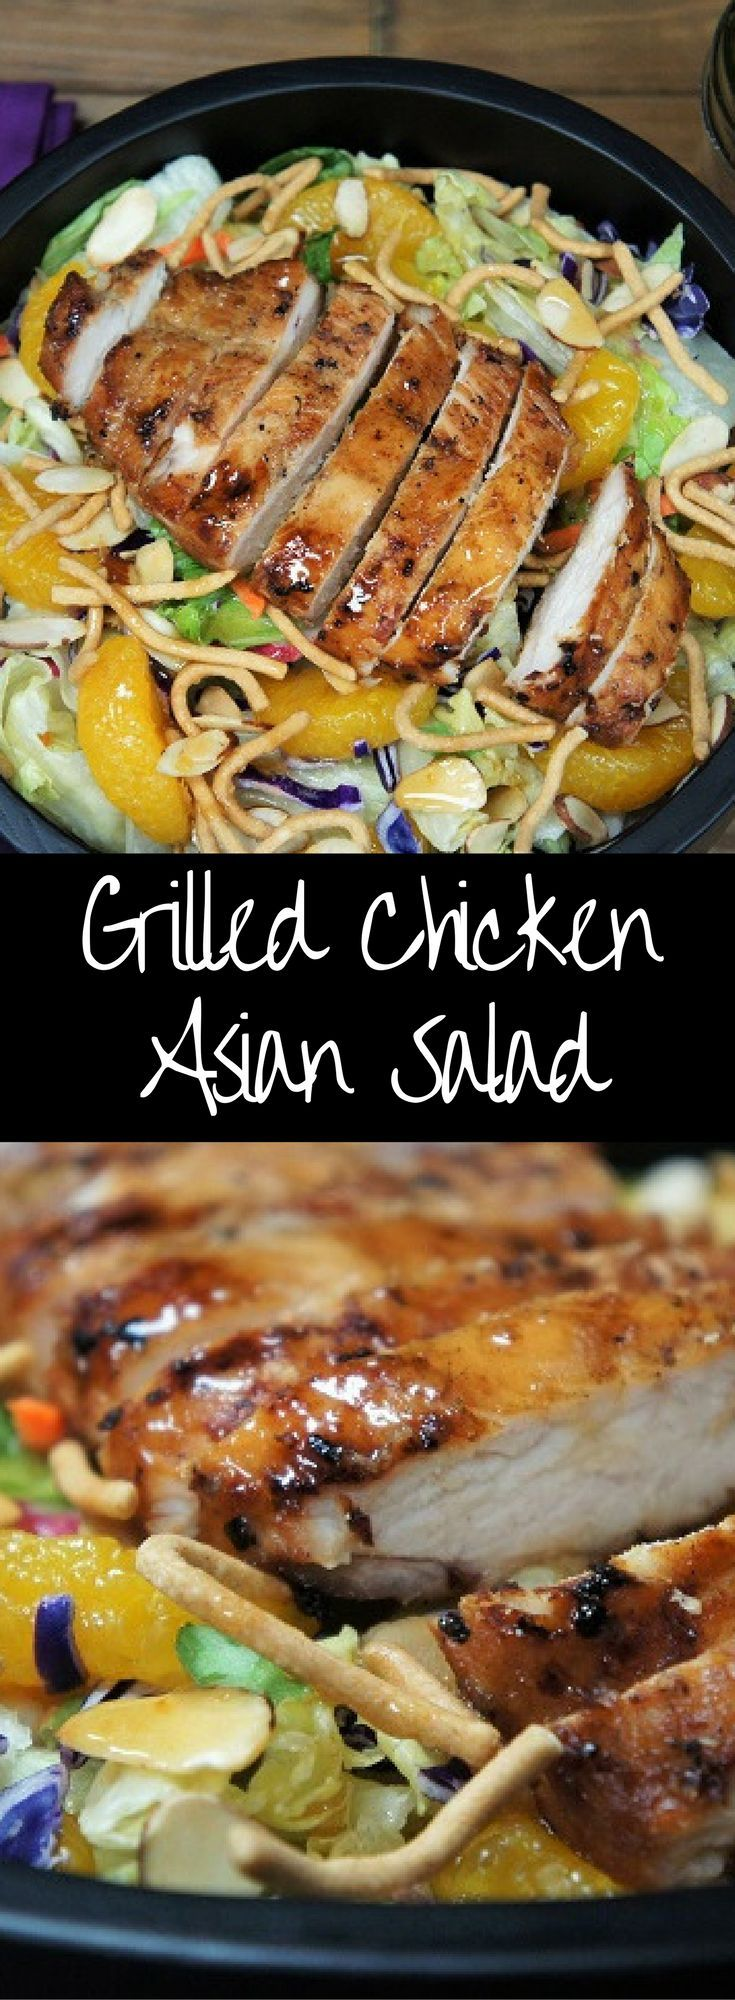 This Grilled Chicken Asian Salad is so good you can serve your family salad for dinner and you won't hear any complaints. A generous bed of lettuce is topped with sweet mandarin slices, toasted almonds, crunchy Chow Mein noodles and a flavorful chicken breast that's been marinated in an Asian inspired sauce. Even the dressing for this salad is special, it's a homemade Orange Marmalade Dressing that's as easy to make as it is delicious. Enjoy!